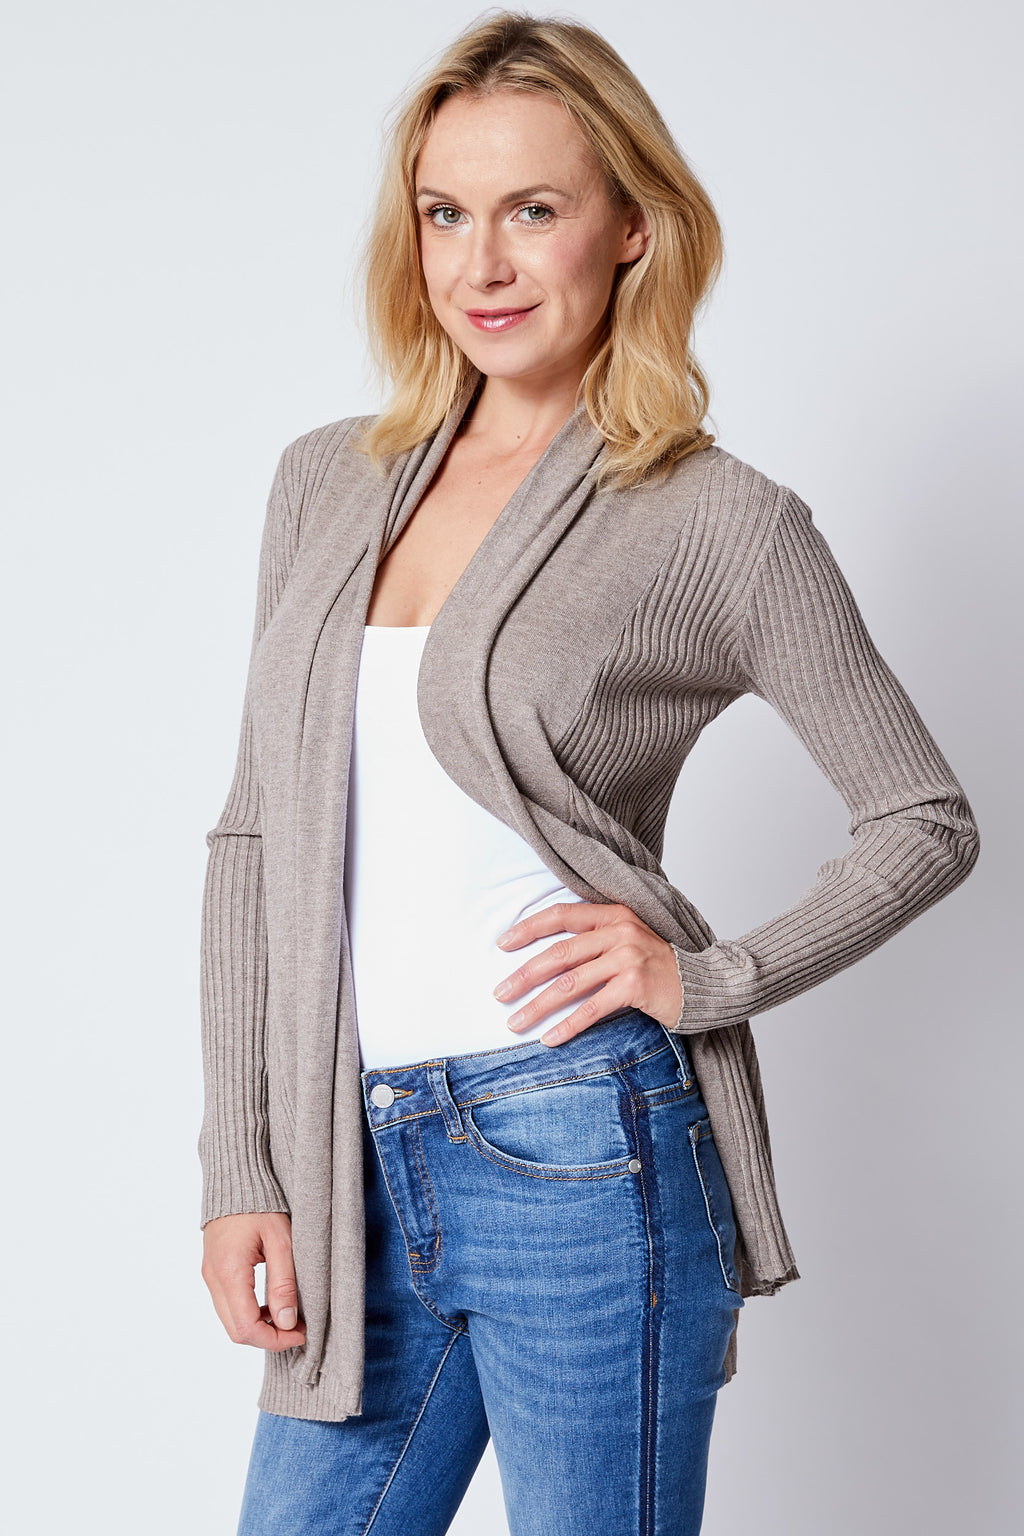 Yummy Ribbed Cardigan - Jacqueline B Clothing